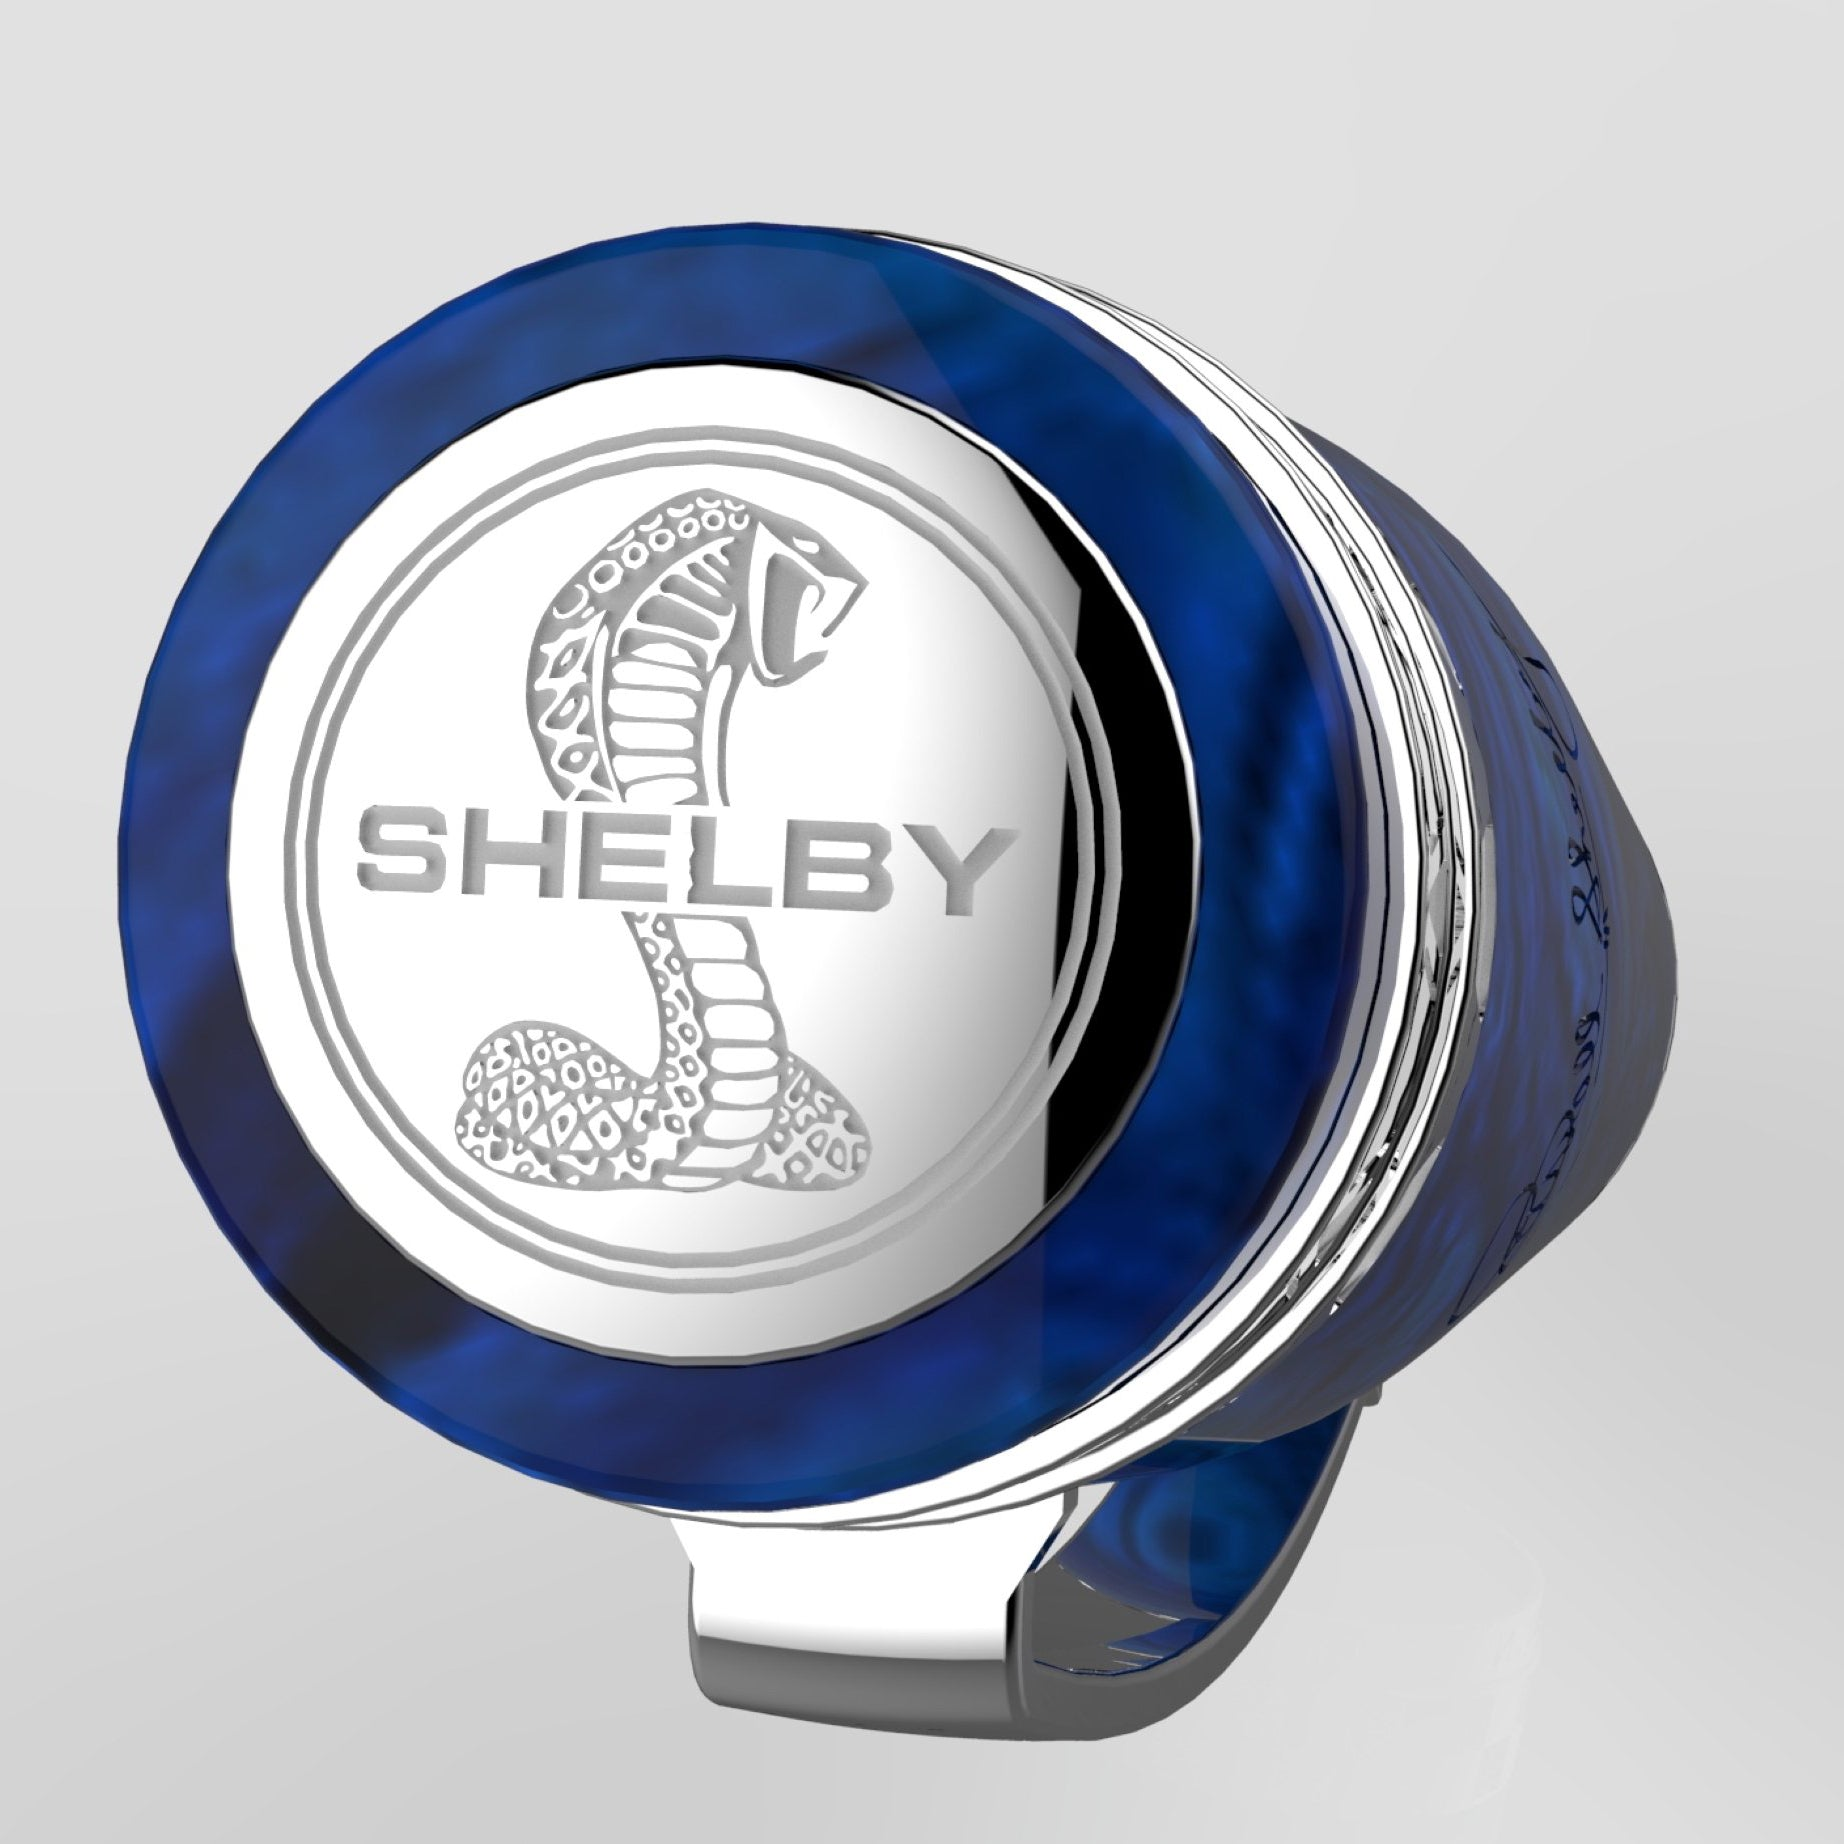 Bexley Carroll Shelby 427 Cobra - New